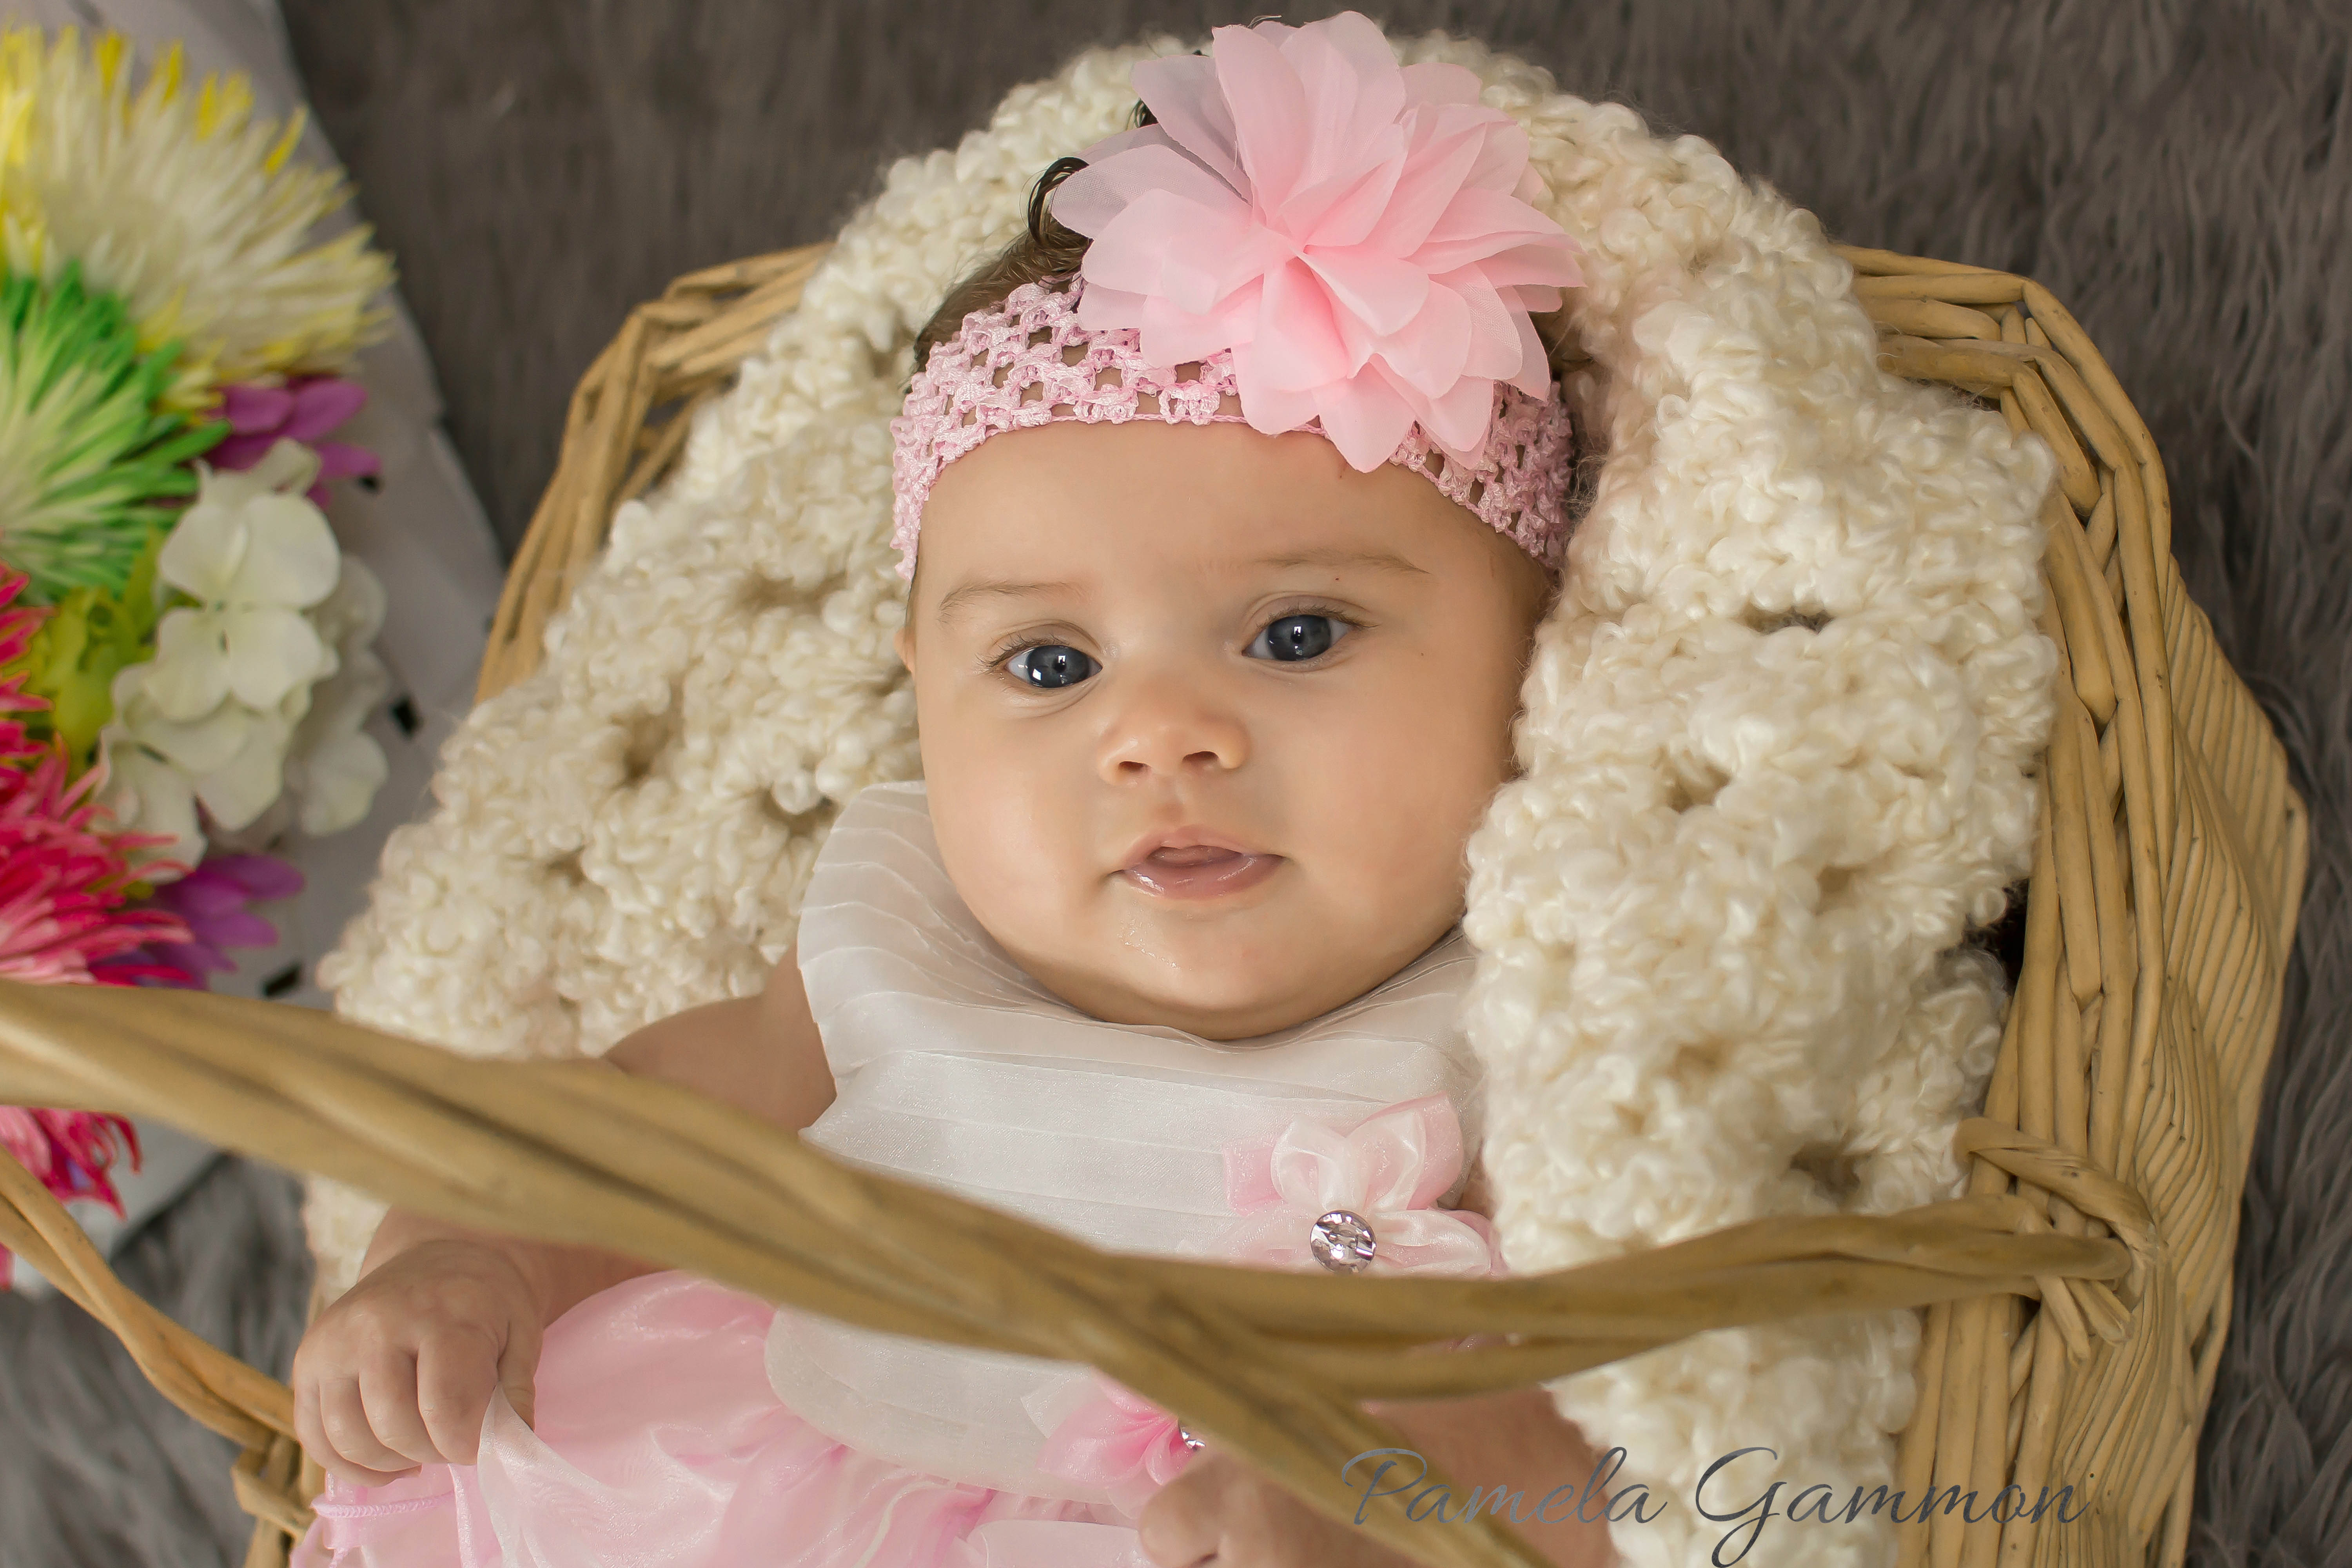 Akeeleighanna wheelersburg ohio baby photographer pamela gammon photography southern oh - Photography ideas for girl ...